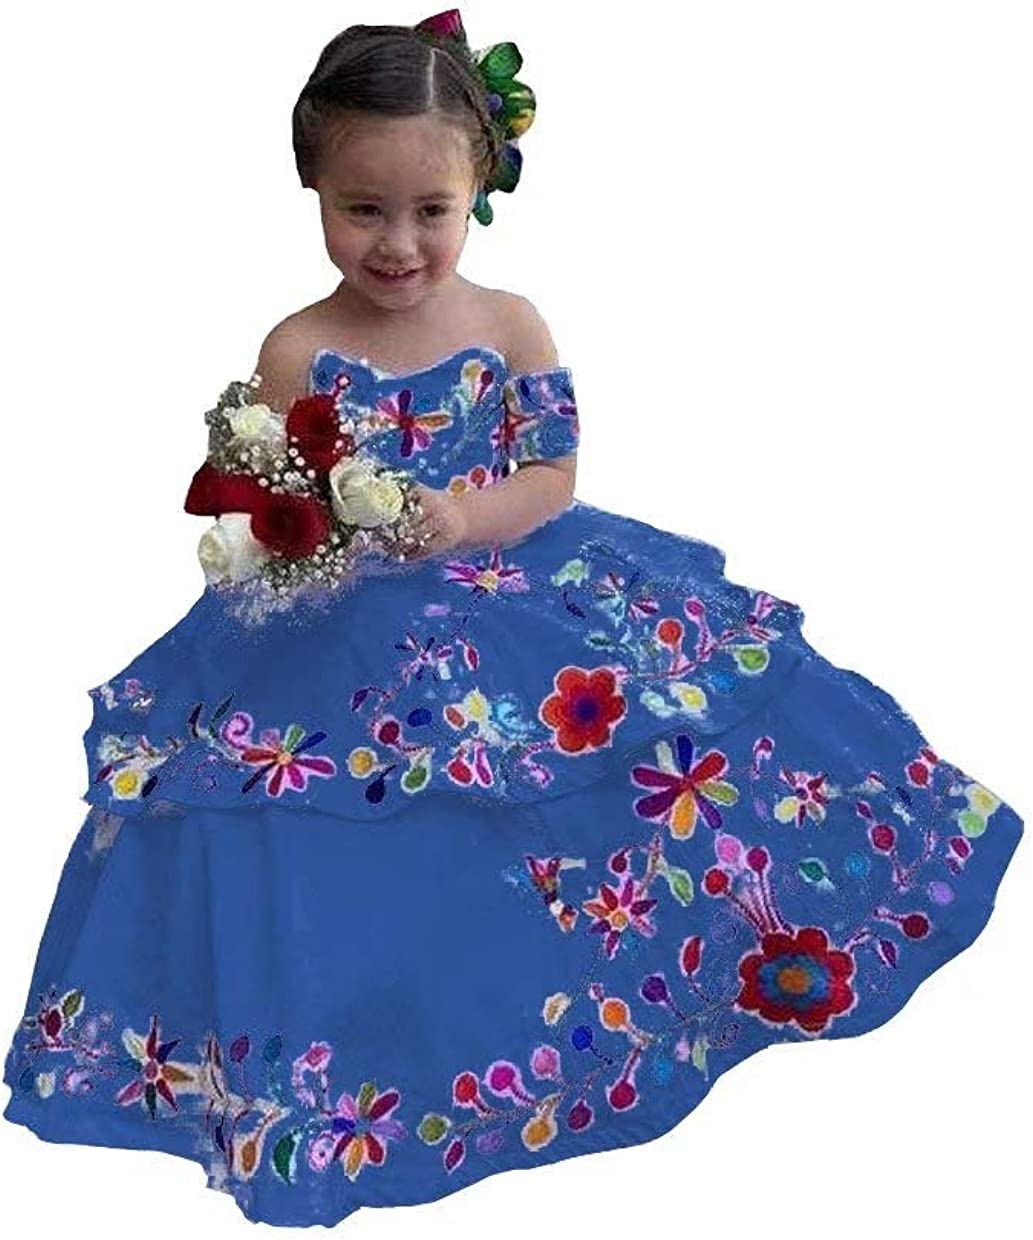 HFAGEMV Colorful Embroidered Flower Girl Dresses for Mexican Wedding Off Shoulder Quinceanera Dress Mini 2021